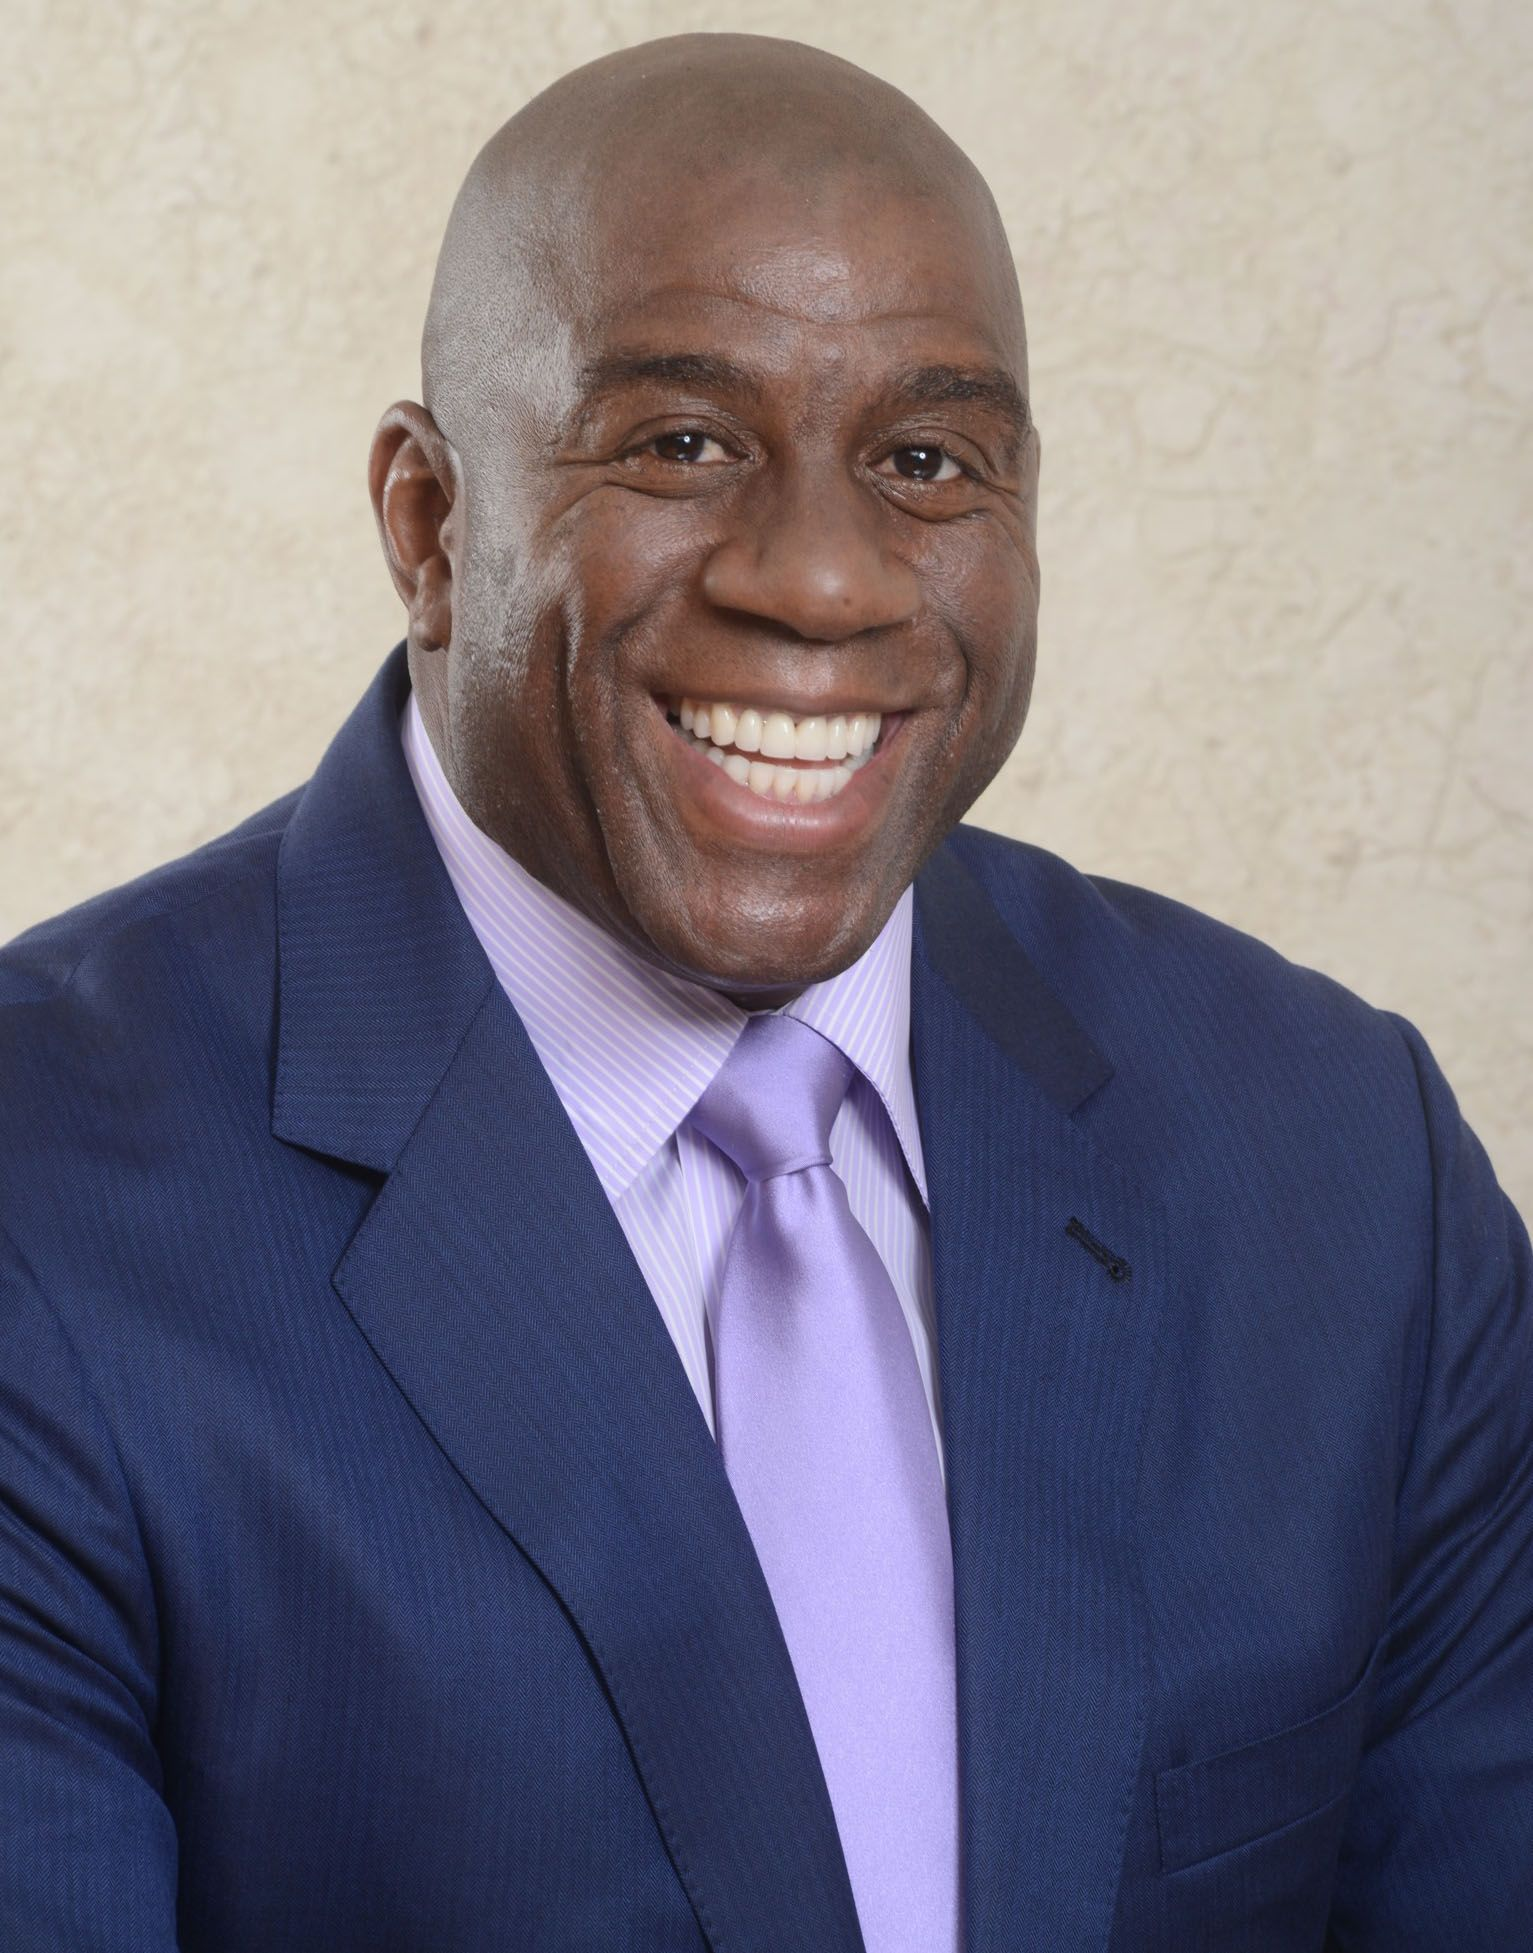 Magic Johnson Biography